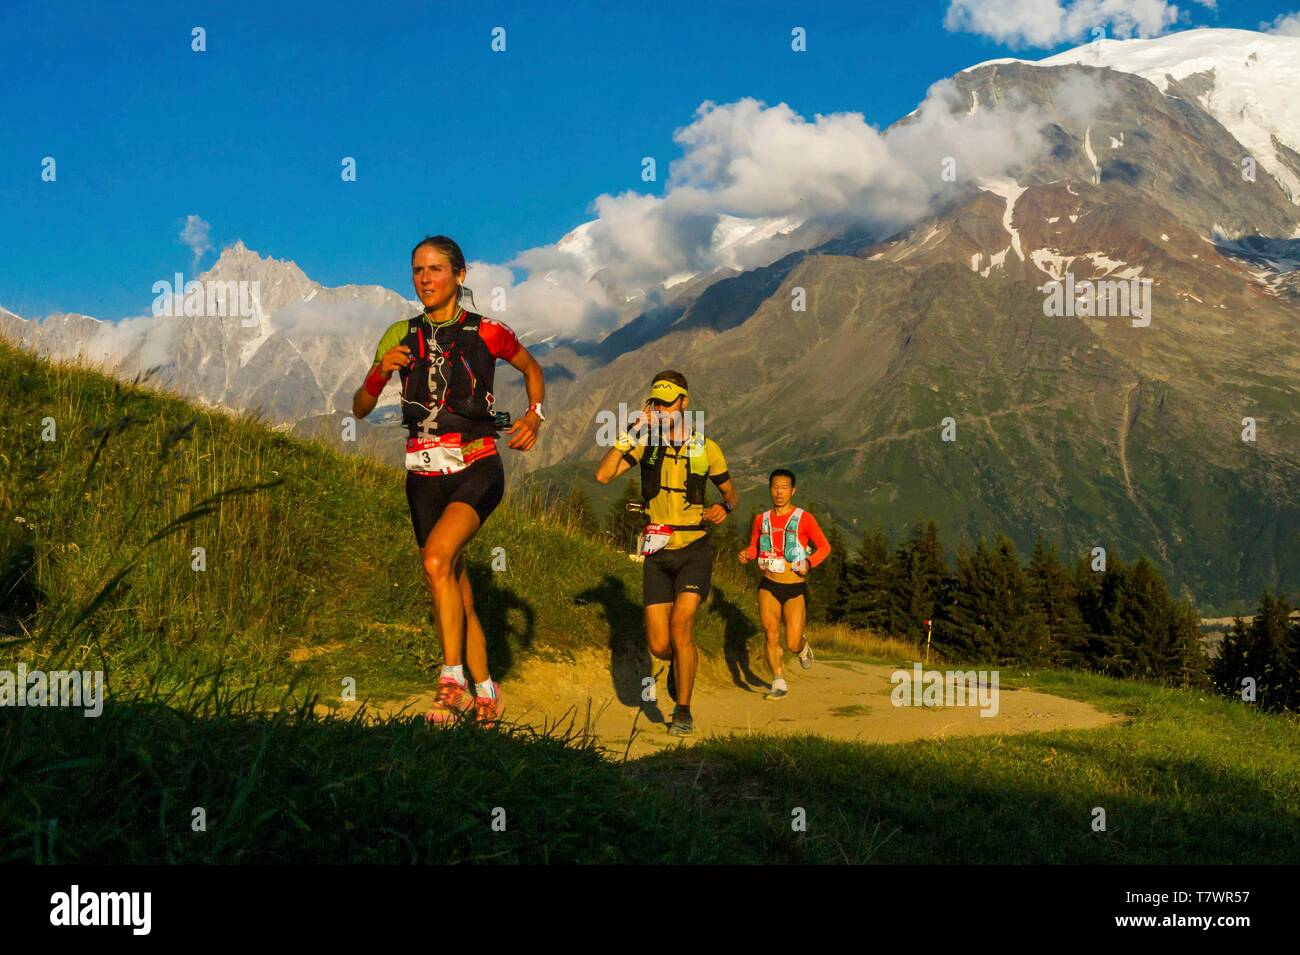 France, Haute-Savoie, St-Gervais-les-Bains, trail race of UTMB, crossing of the col de Voza, at the foot of the Aiguillel du Goûter and Aiguille du Midi on the left - Stock Image